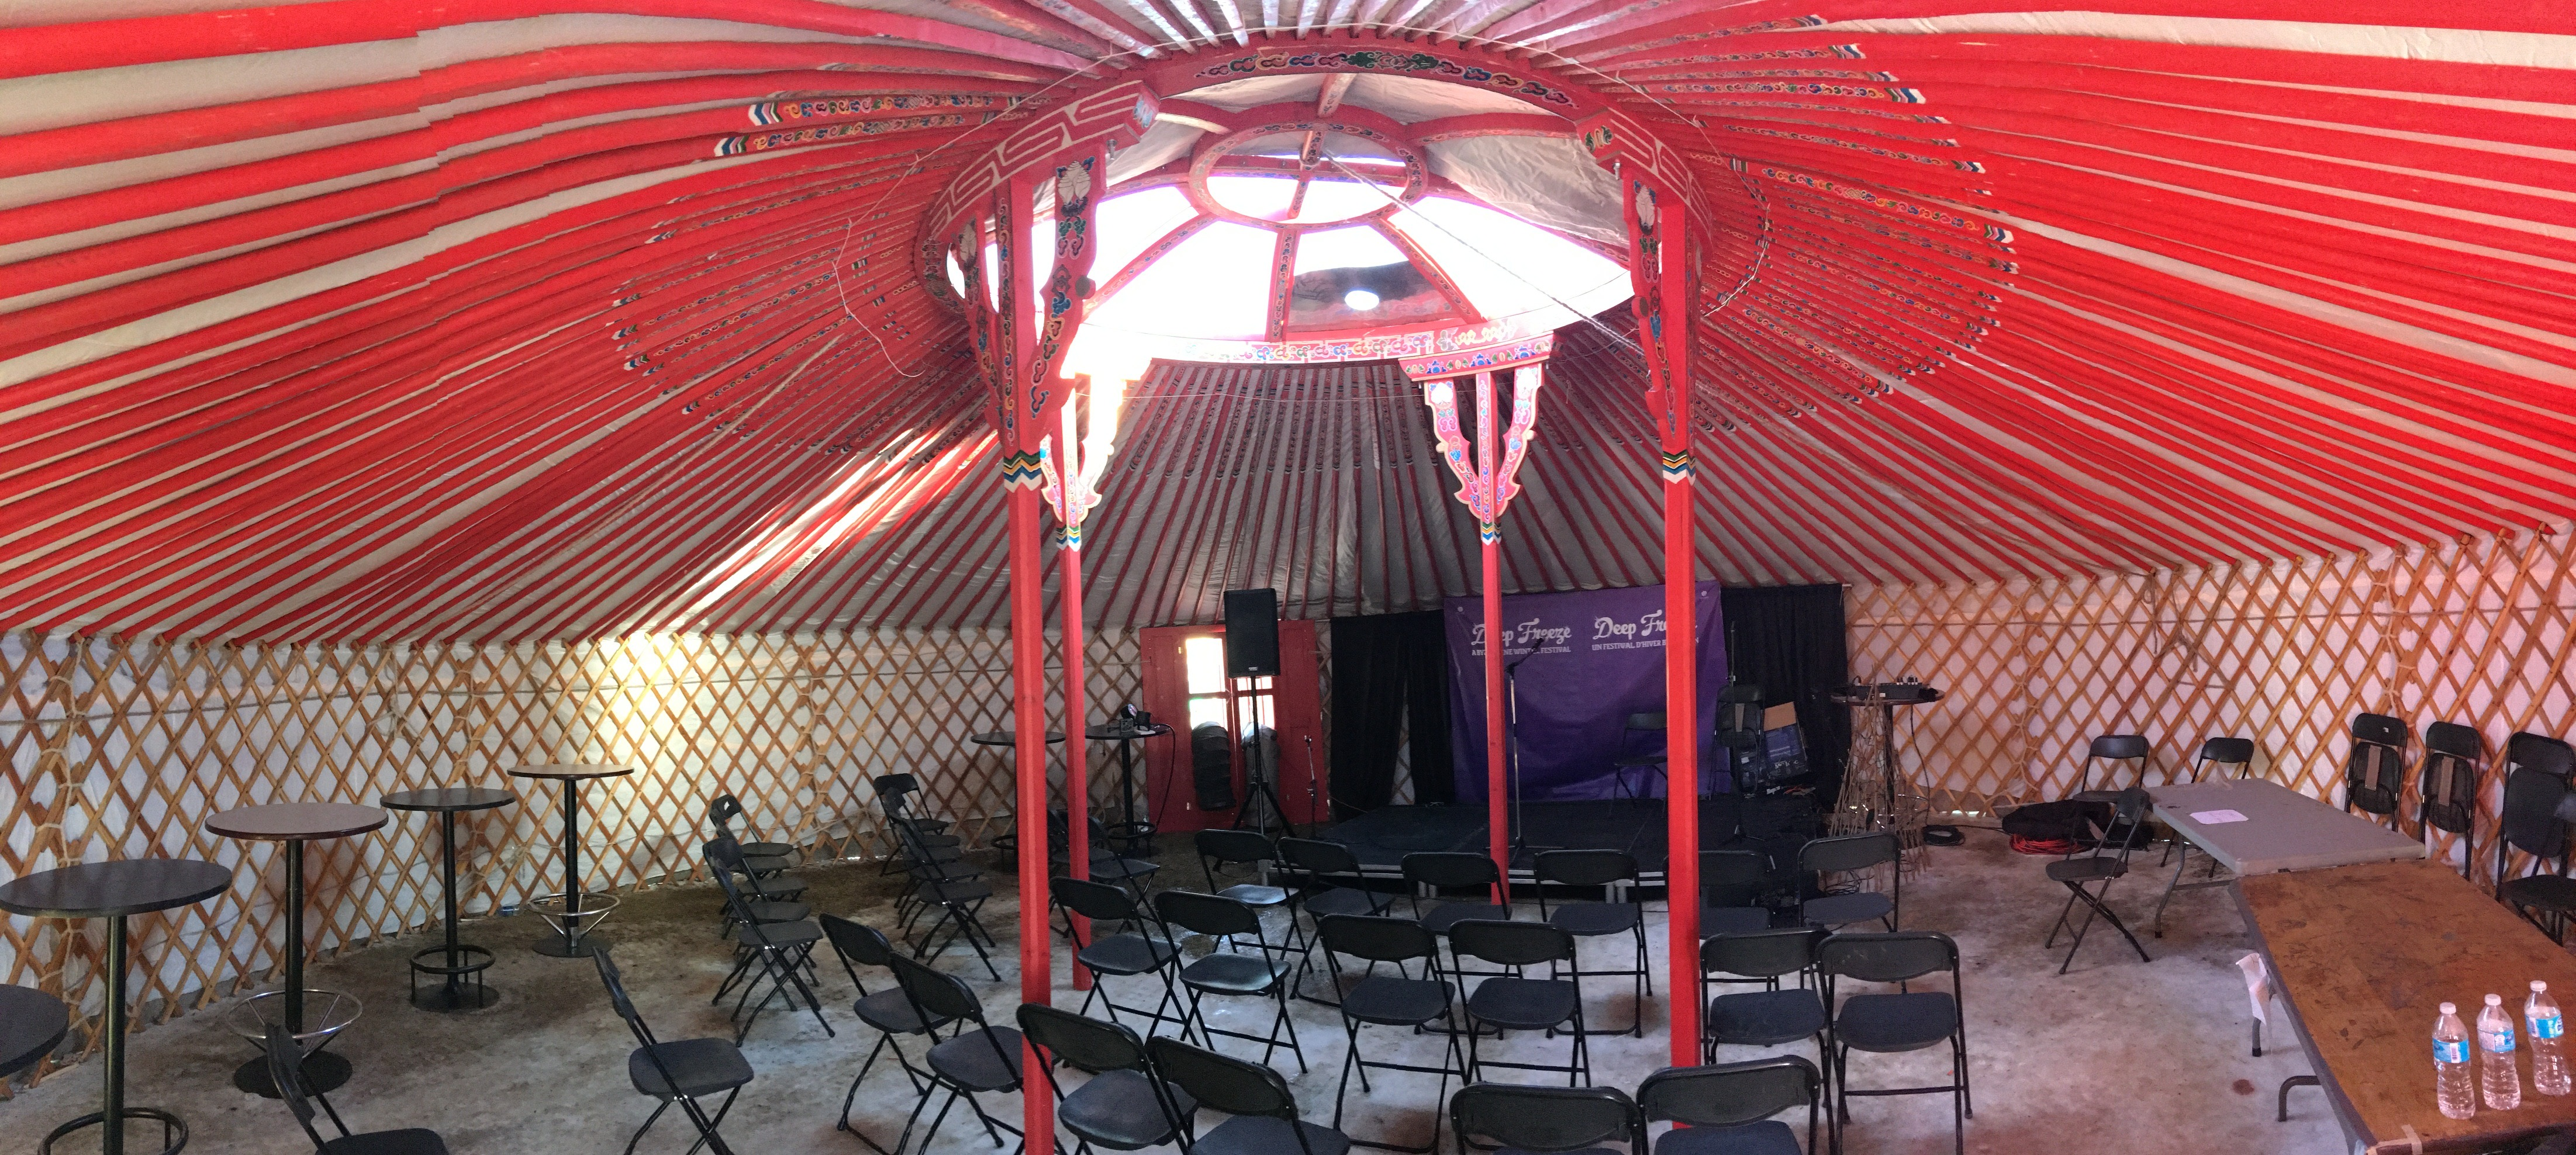 event hosted in a yurt